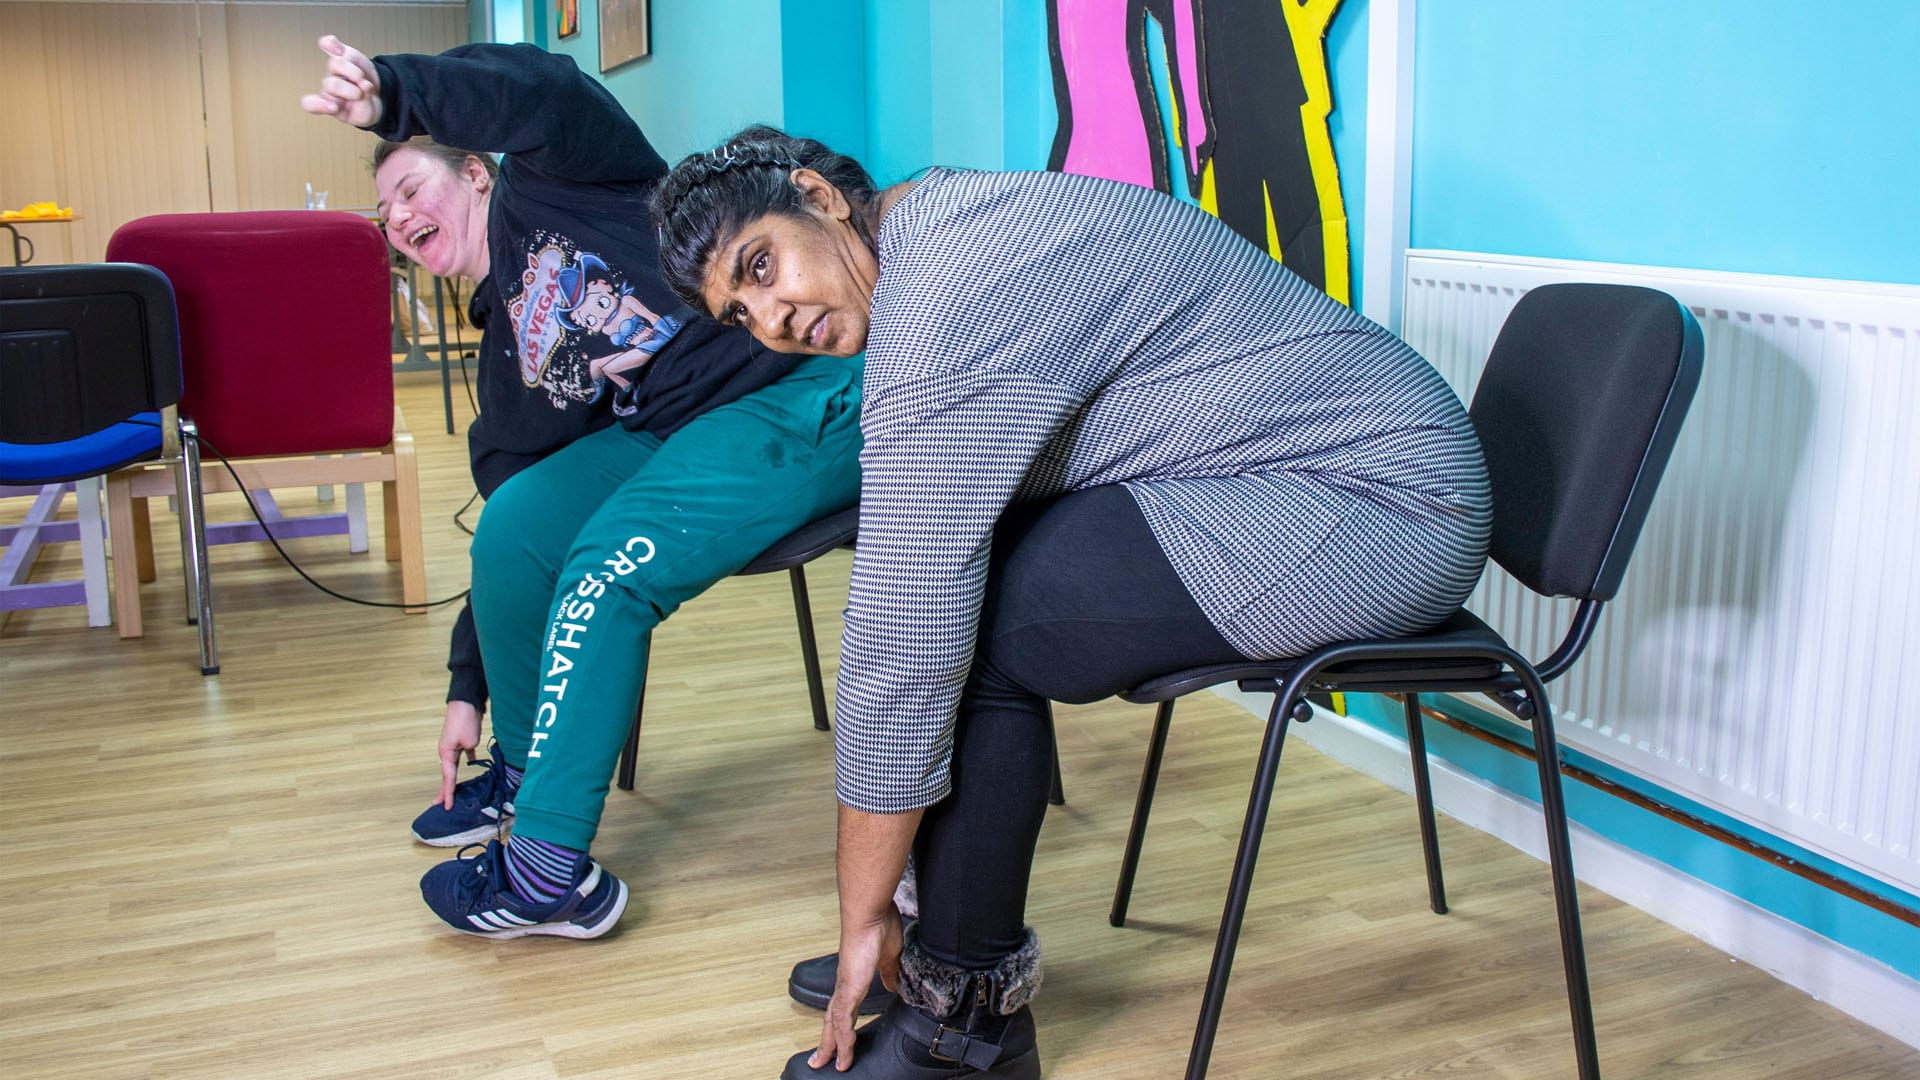 Two service users sat in chairs doing exercises.